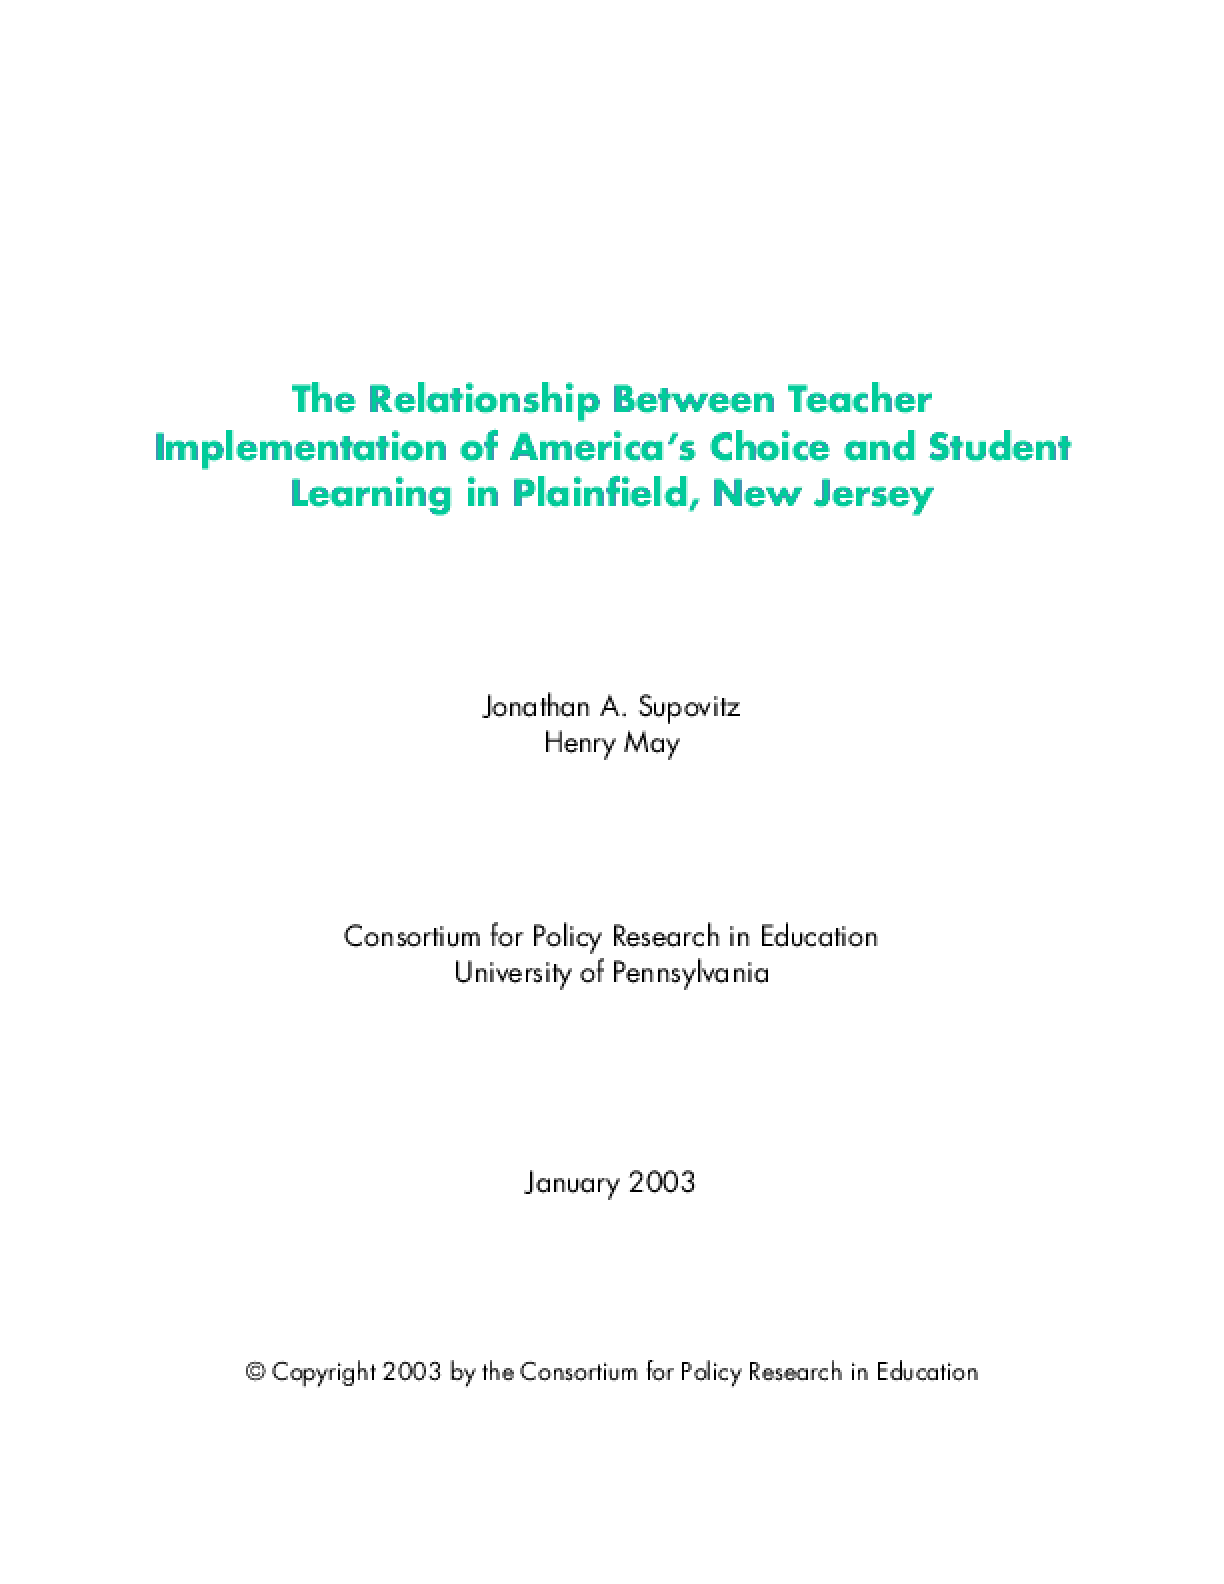 The Relationship Between Teacher Implementation of America's Choice and Student Learning in Plainfield, New Jersey